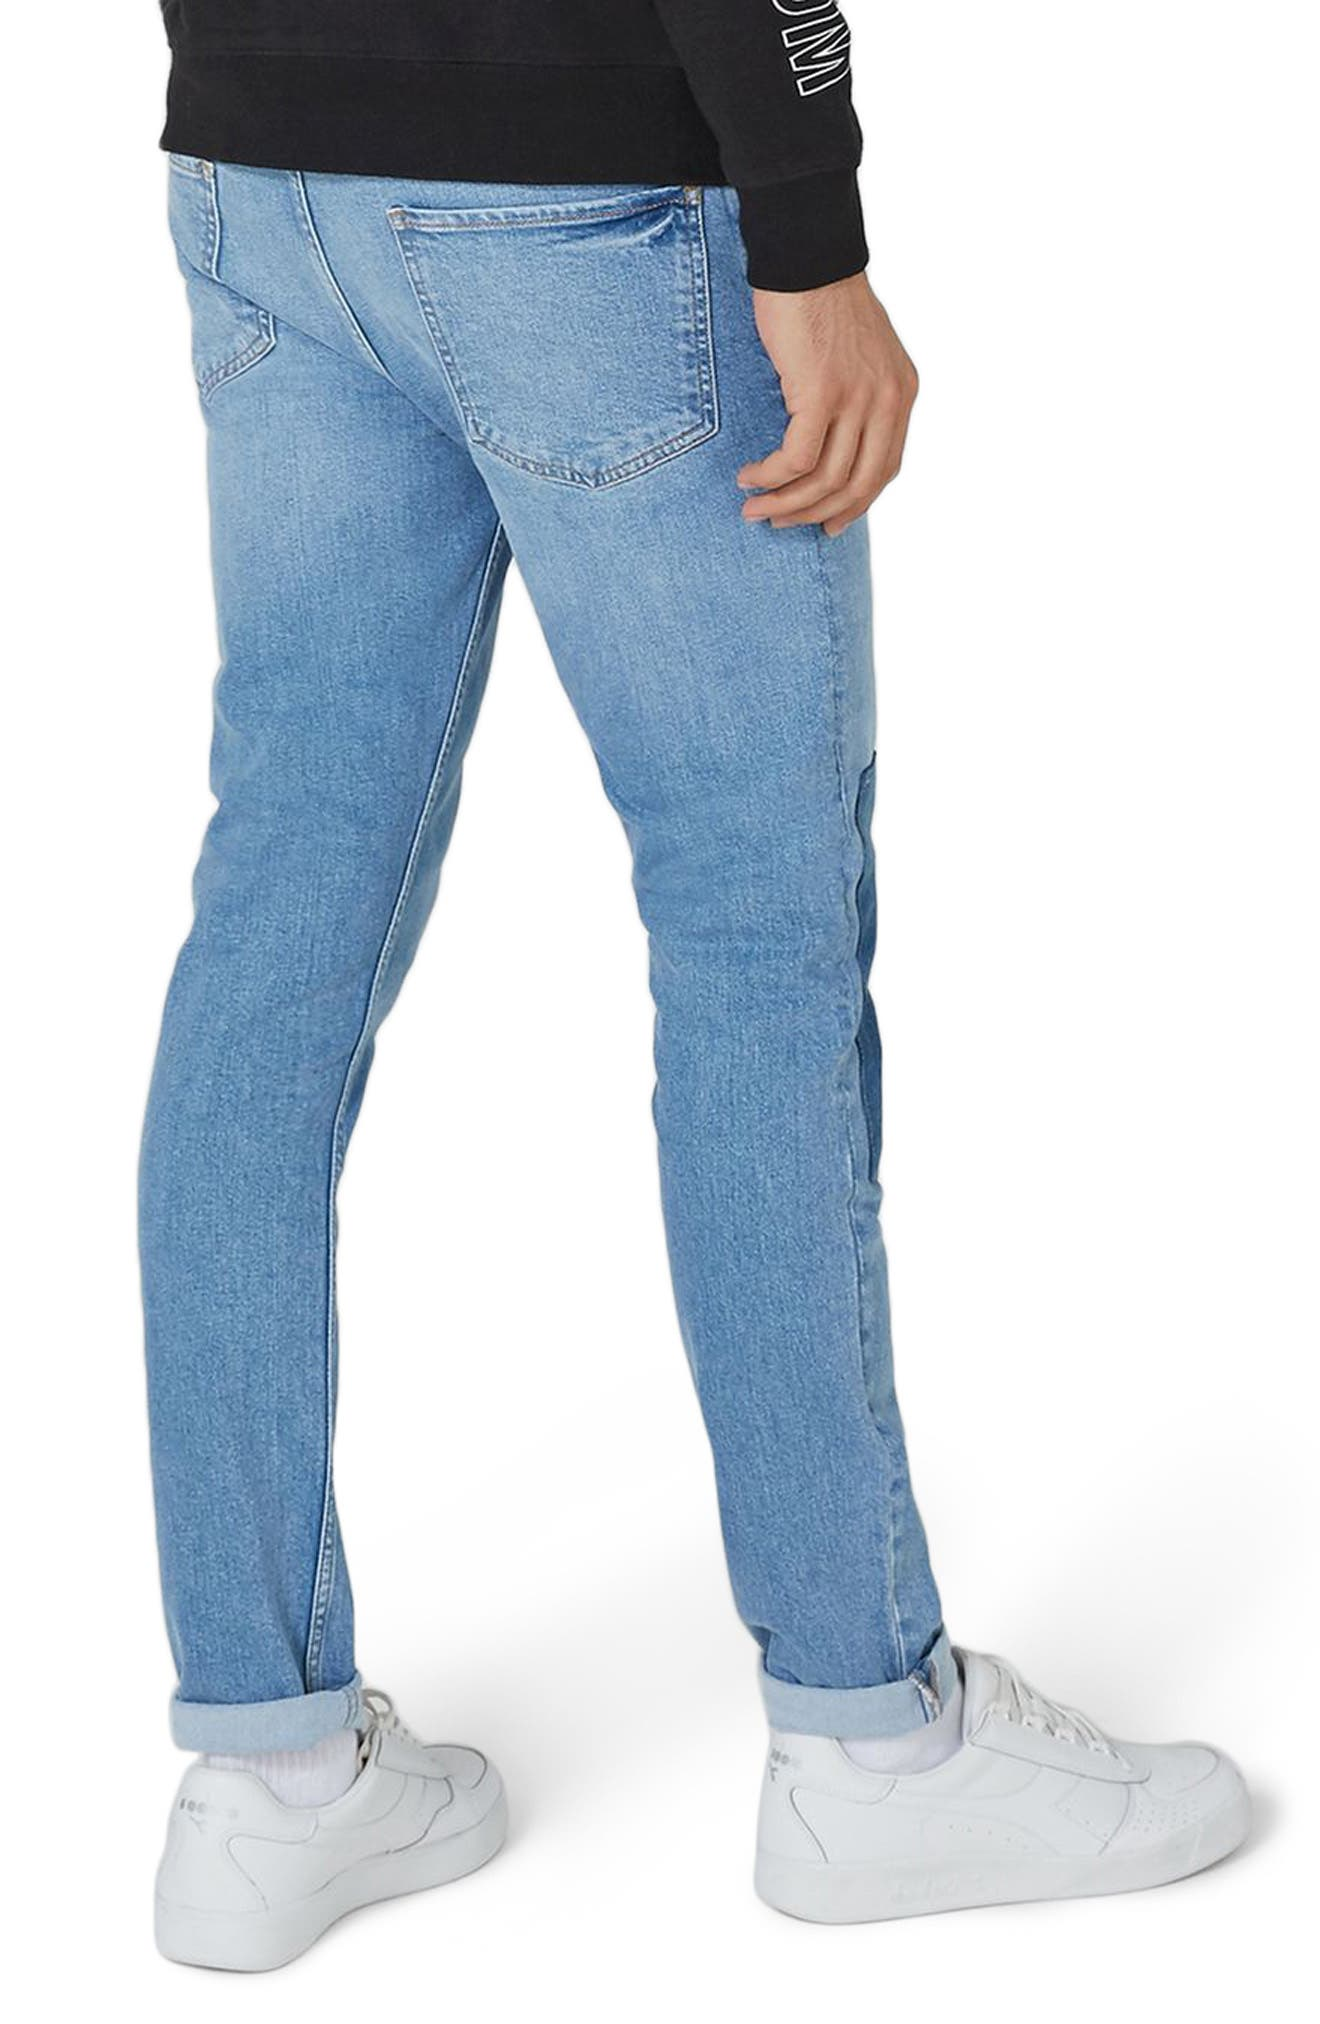 Patch Stretch Skinny Jeans,                             Alternate thumbnail 2, color,                             Blue